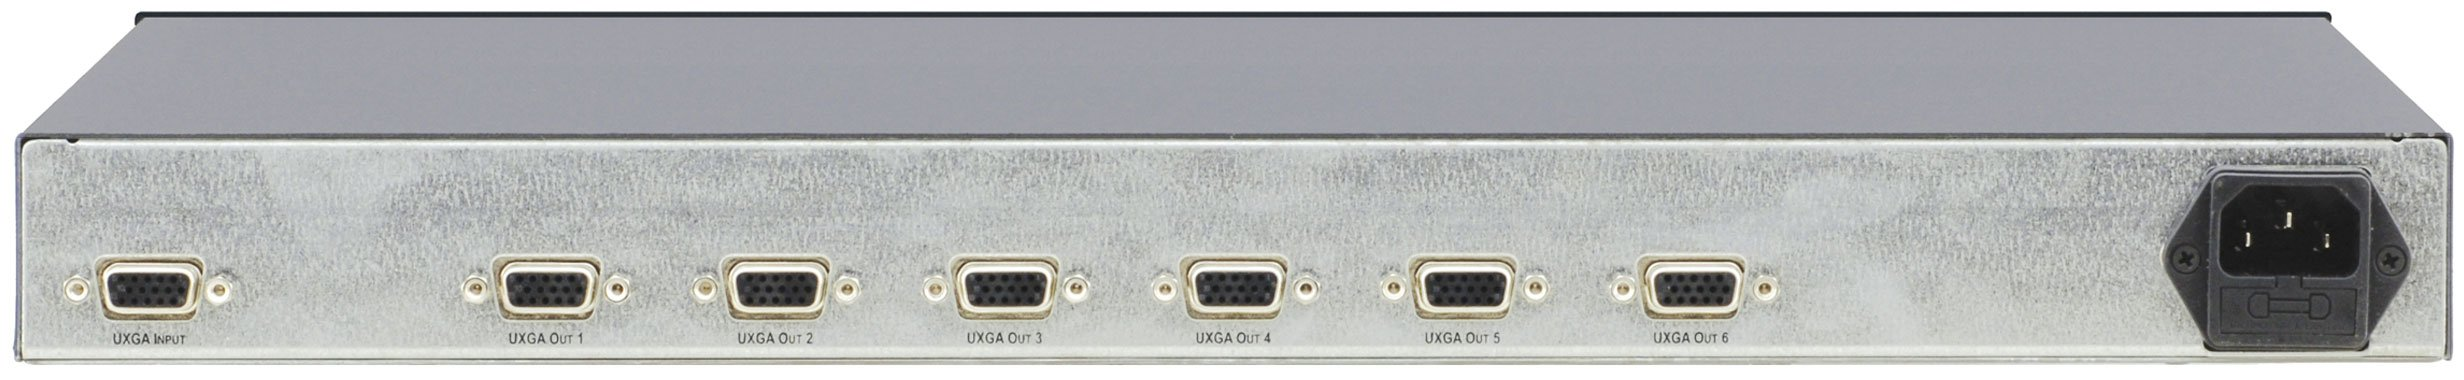 1:6 Computer Graphics Video Distribution Amplifier